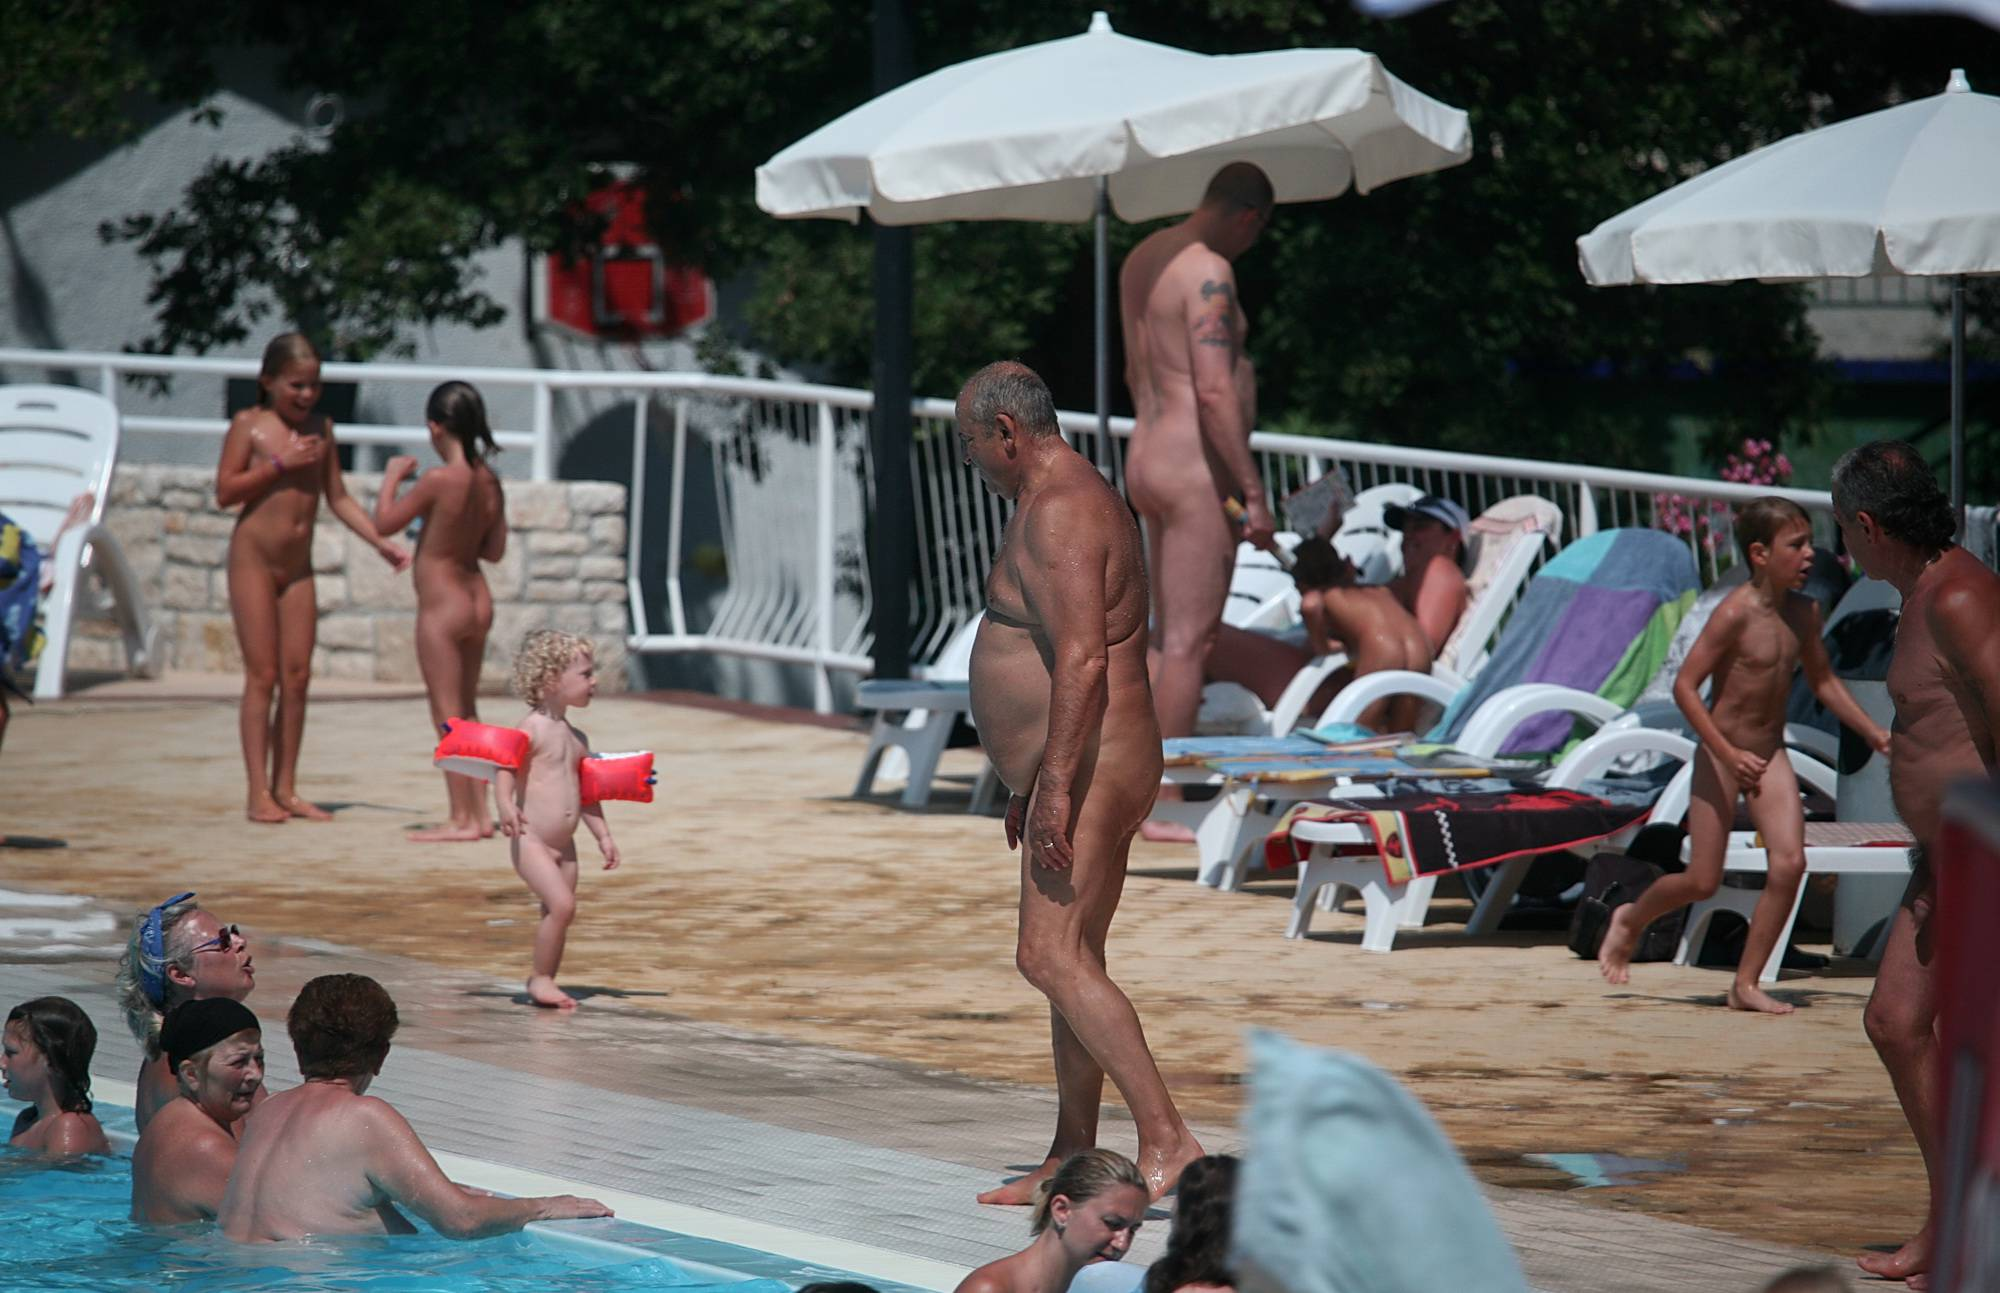 Nudist Pics Liesurely Pool Strolling - 2